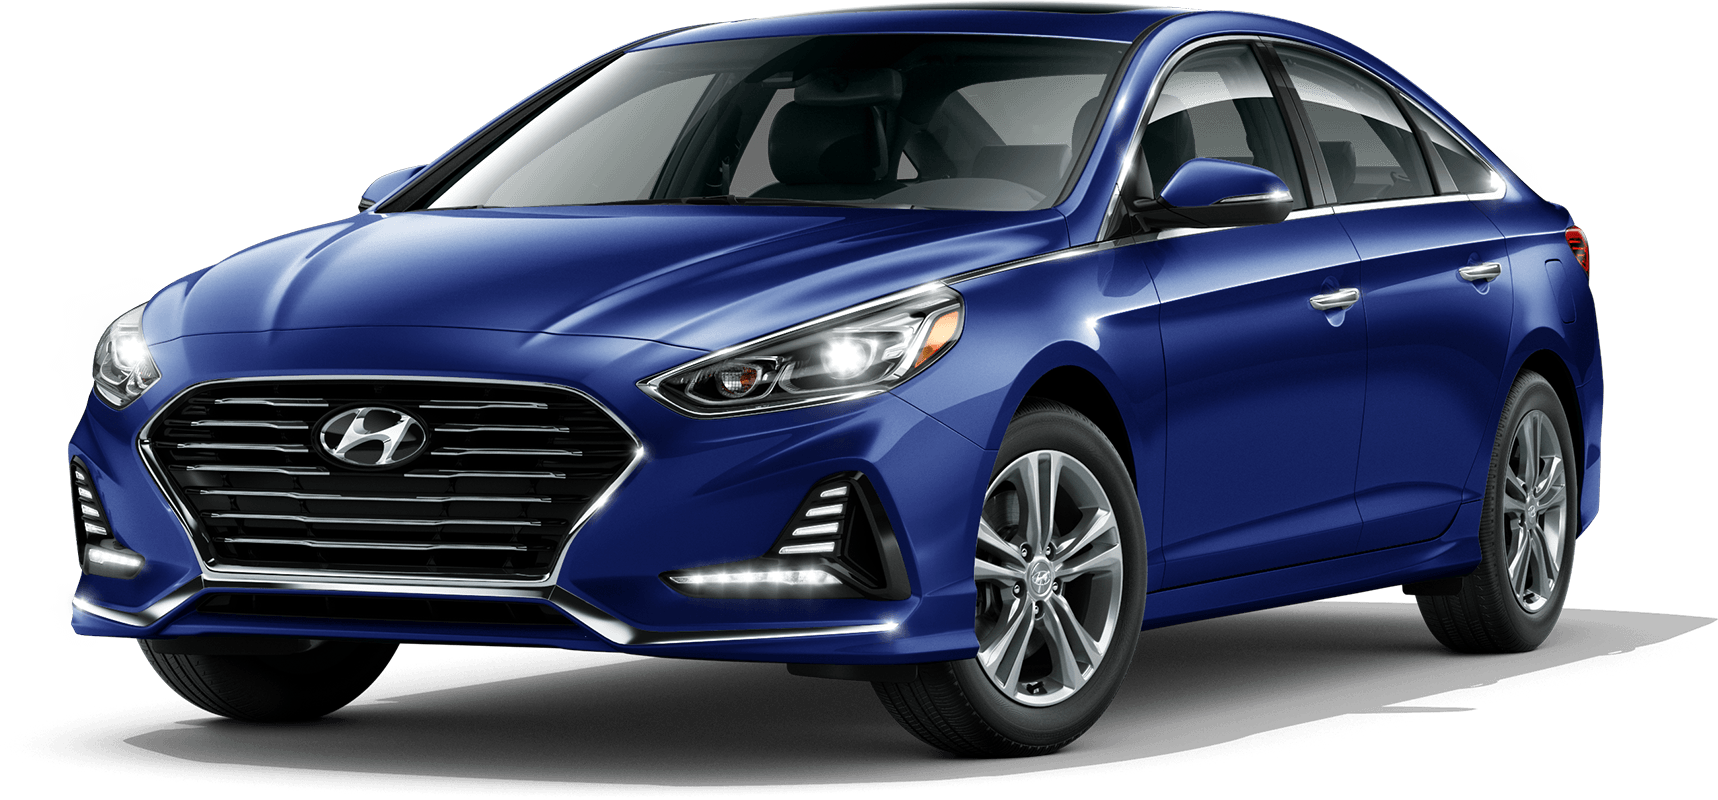 2018 Hyundai Sonata at Linwood Hyundai in Paducah, KY